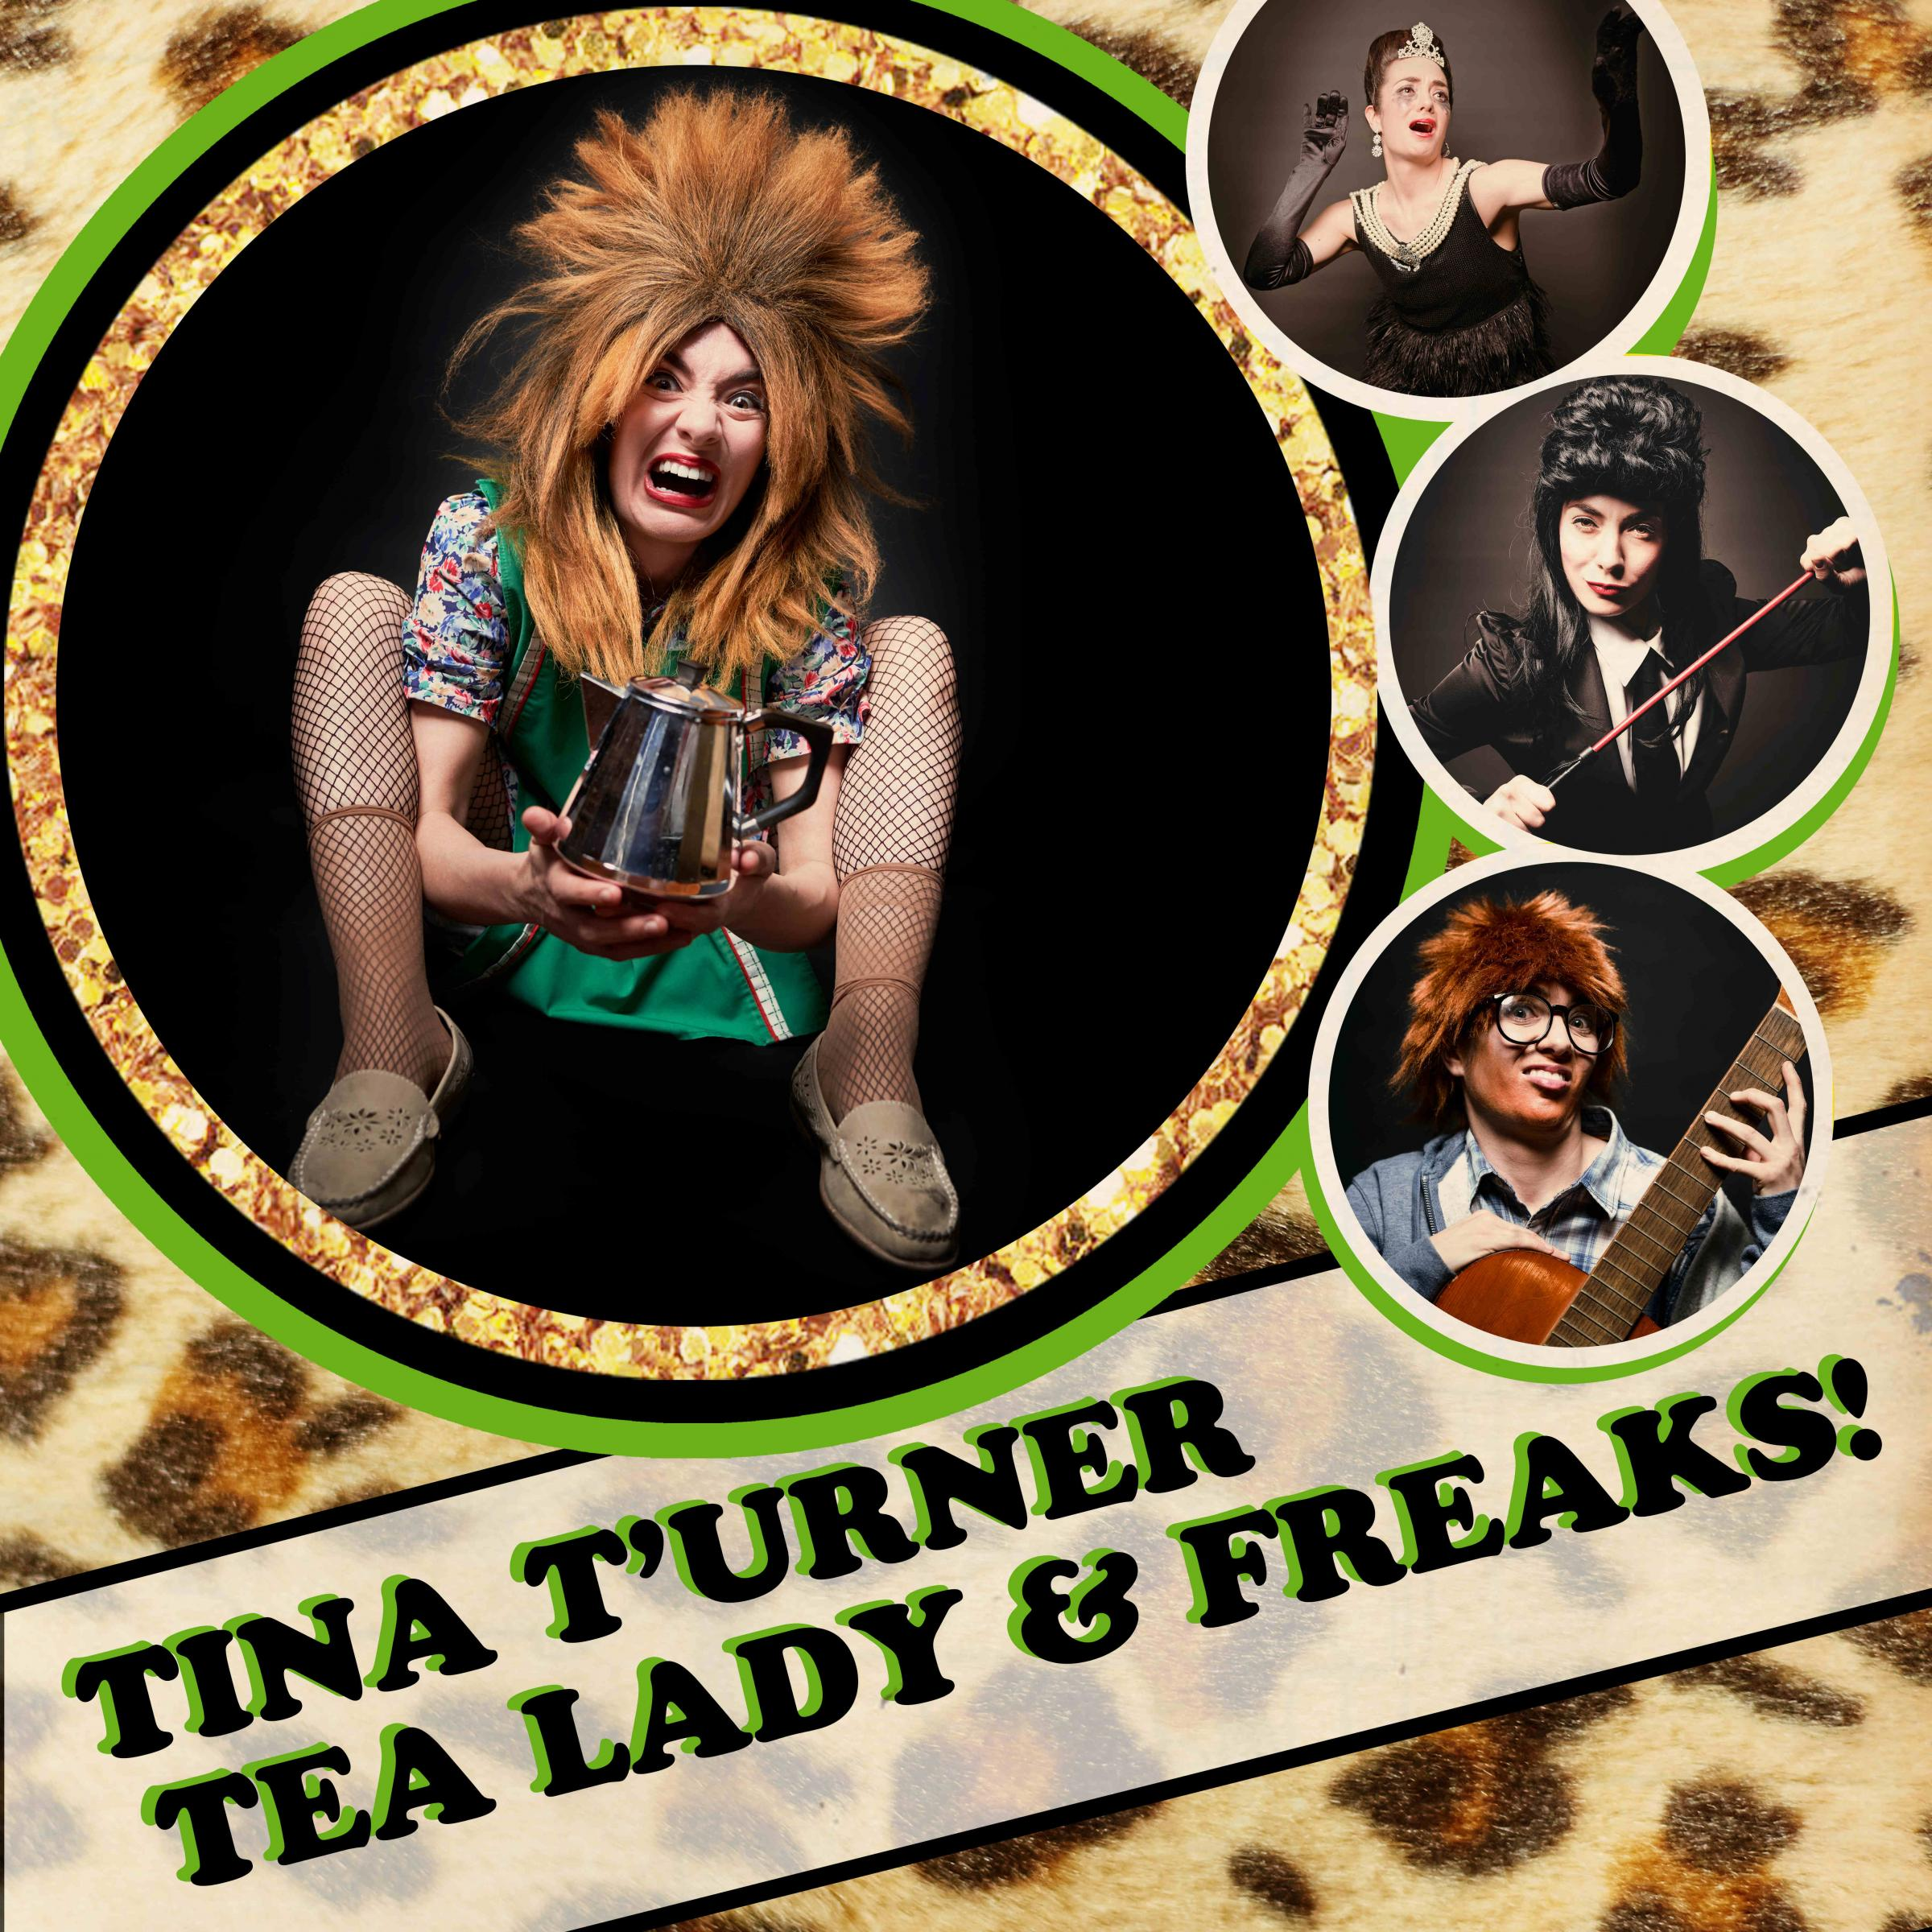 Tina T'Urner Tea Lady and Freaks